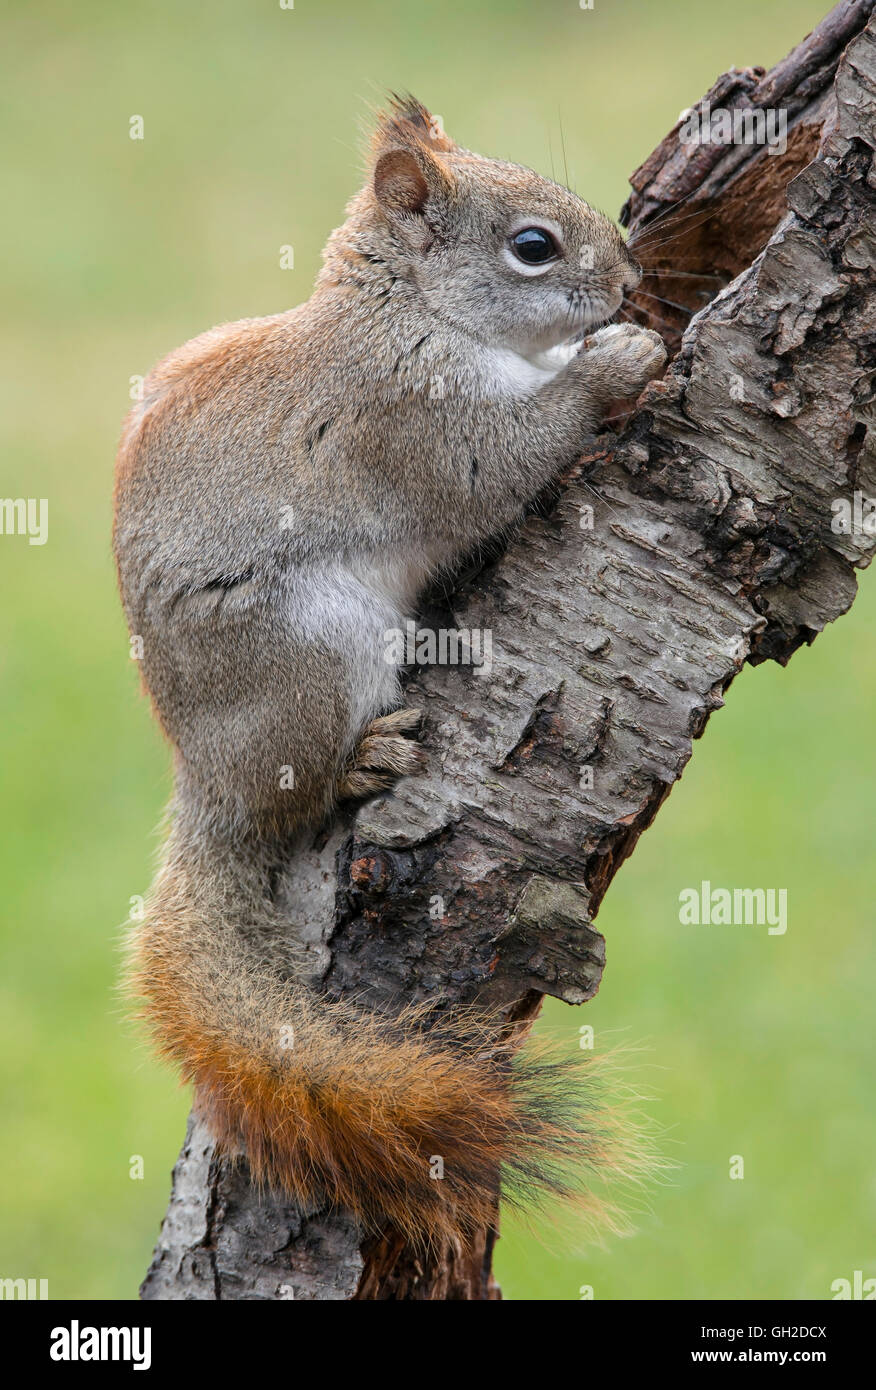 Eastern Red Squirrel eating acorn (Tamiasciurus or Sciurus hudsonicus), early Spring, E North America - Stock Image